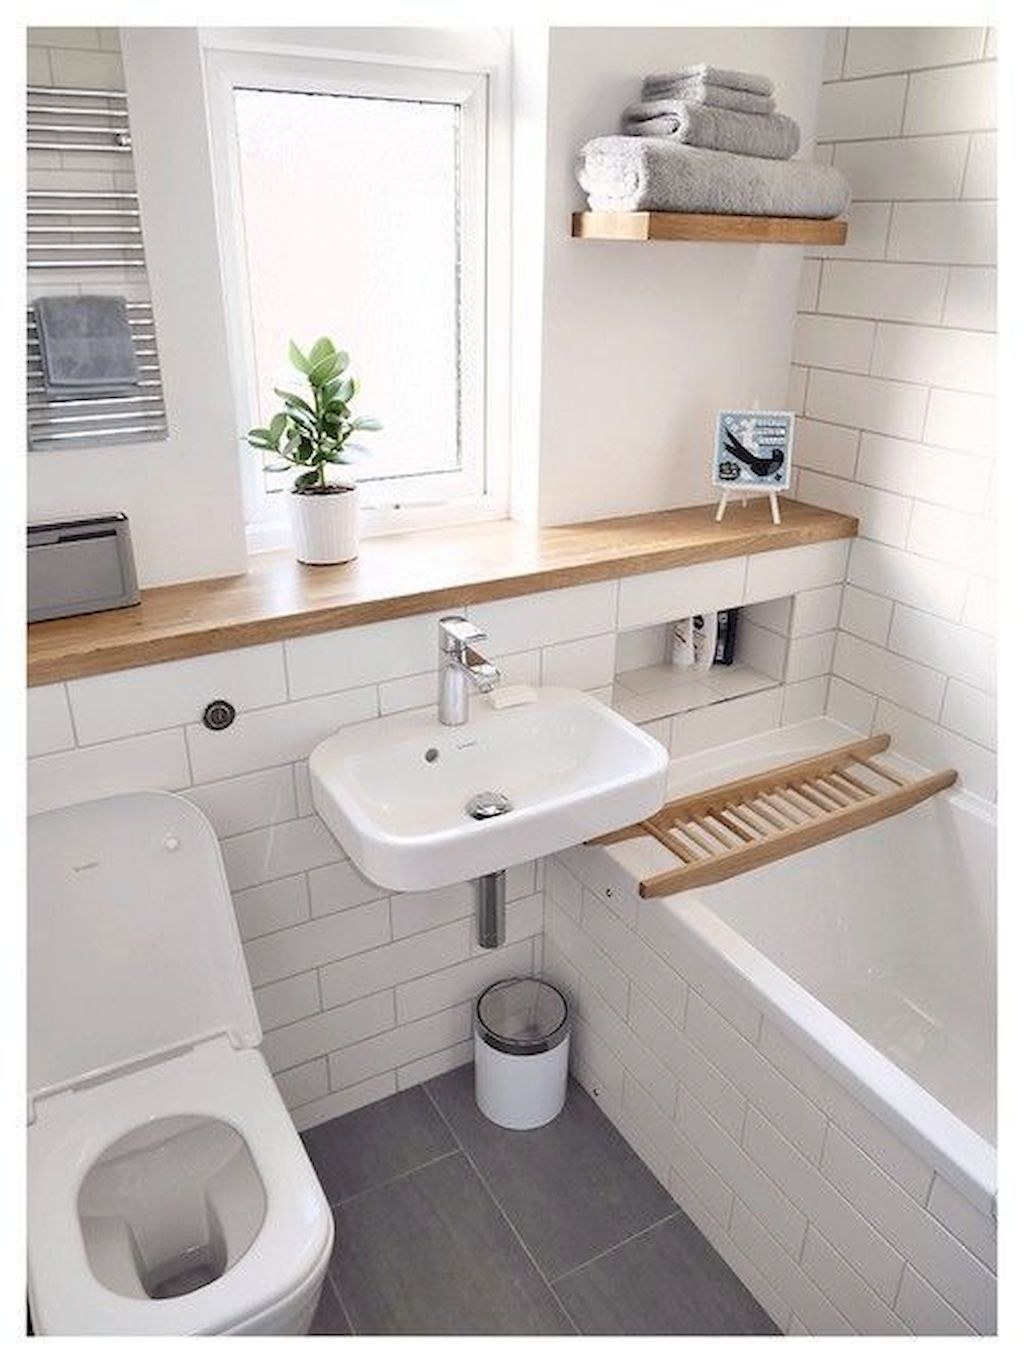 Tiles Ideas for Small Bathroom (15)